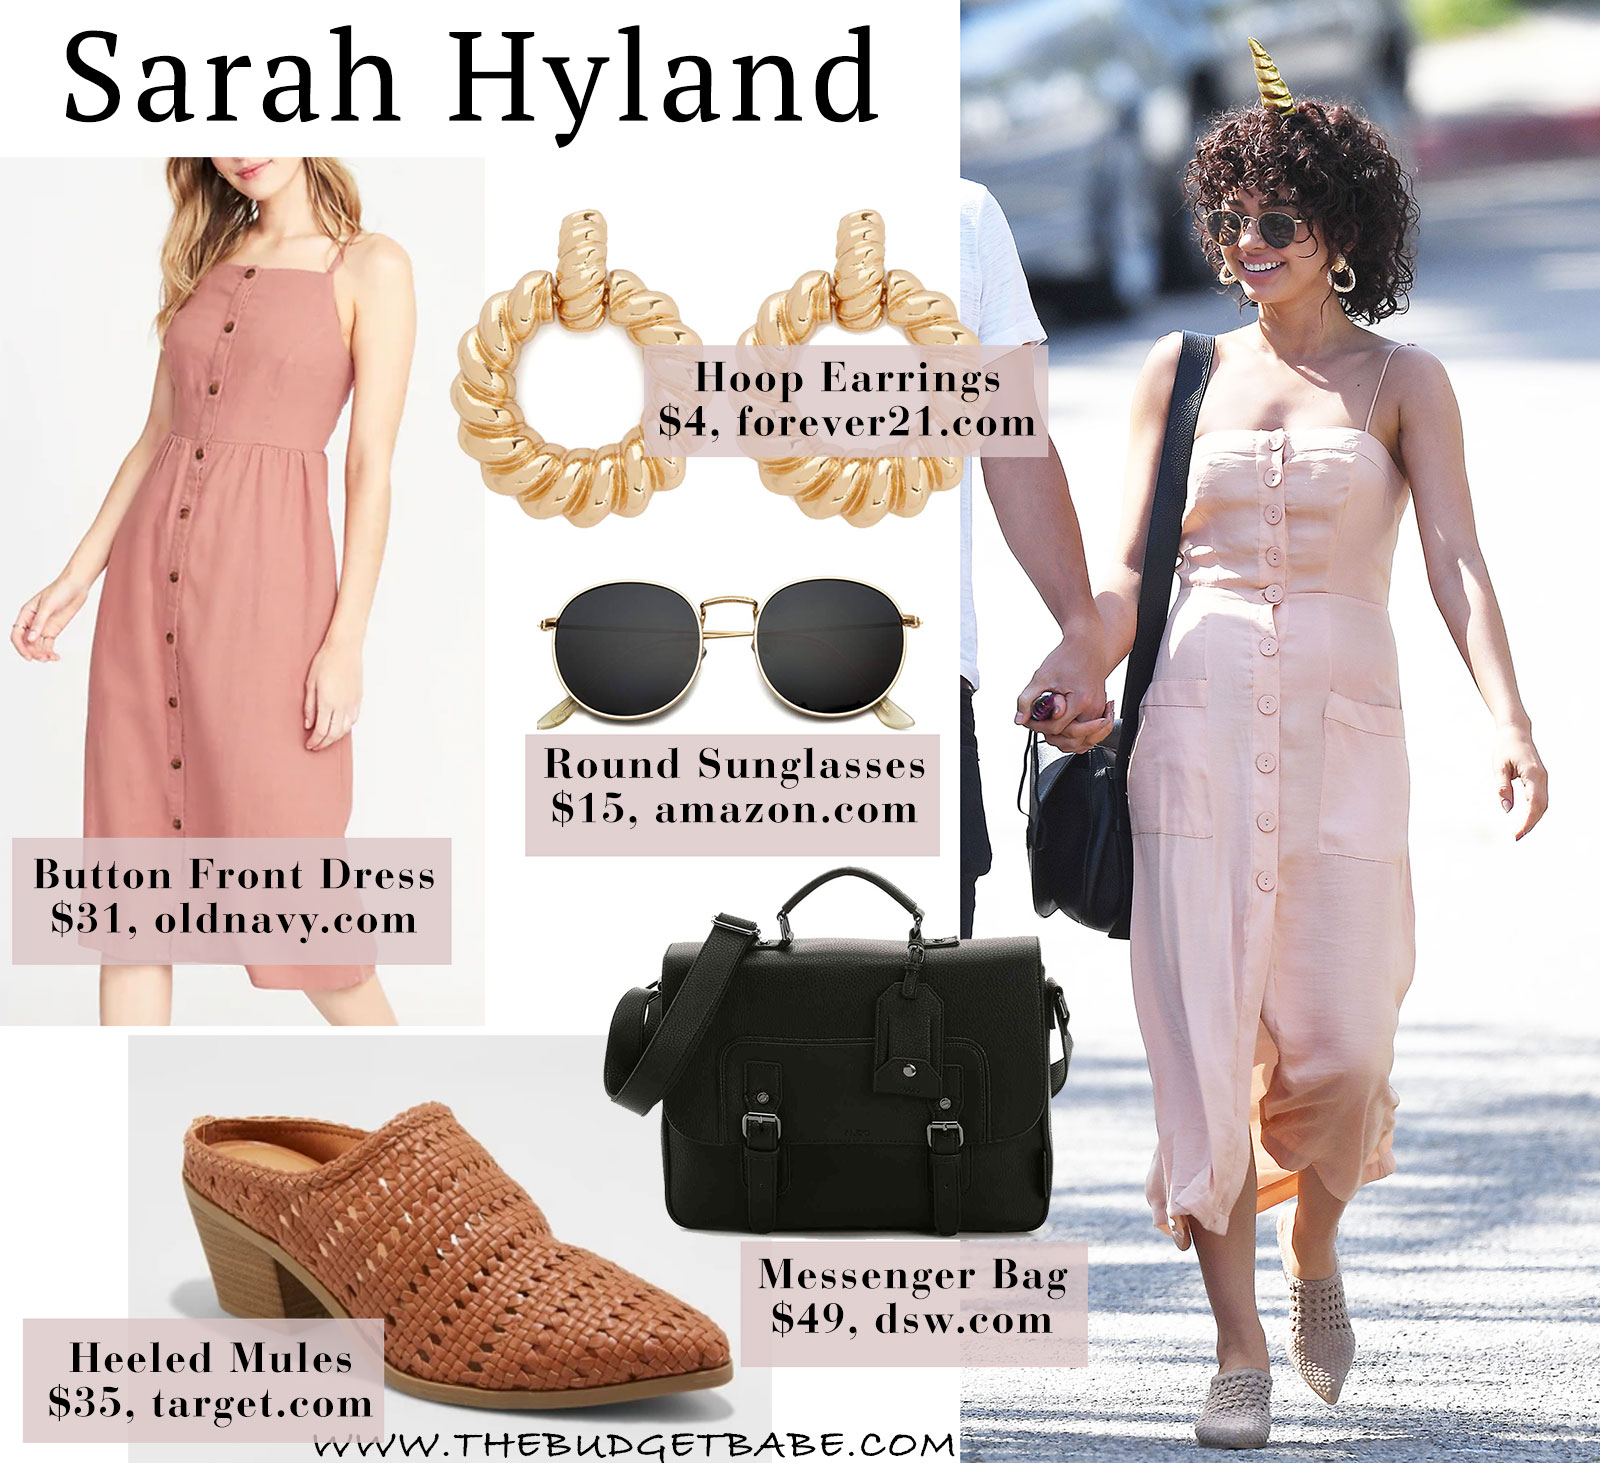 Sarah Hyland's cute pink dress look for less